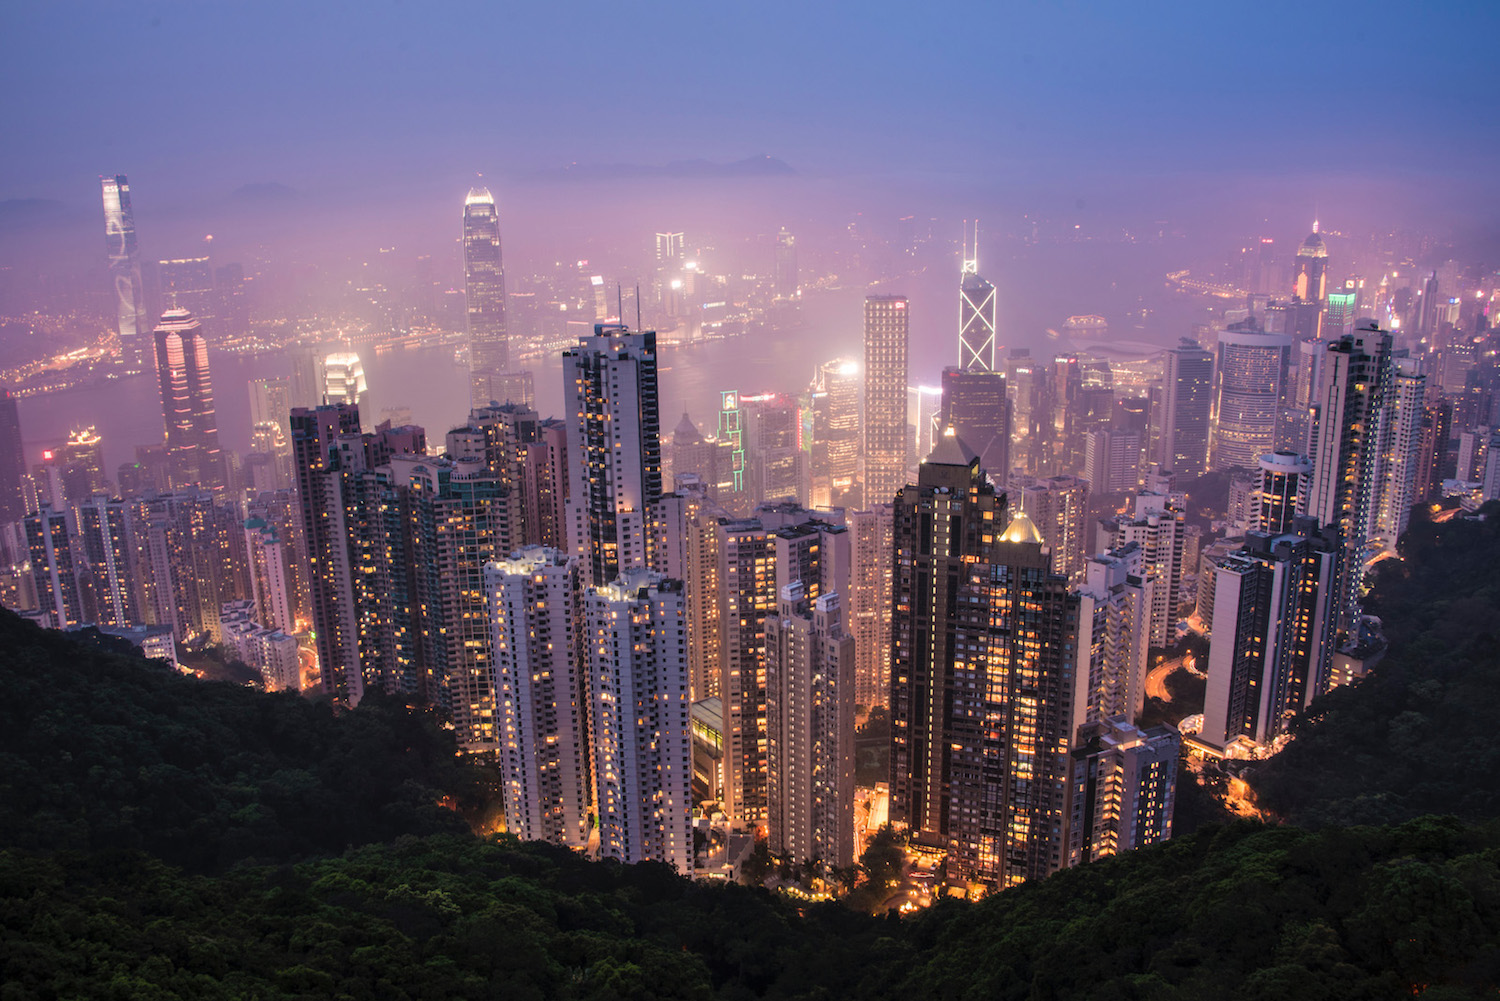 30 Pictures That Will Make You Want to Visit Hong Kong